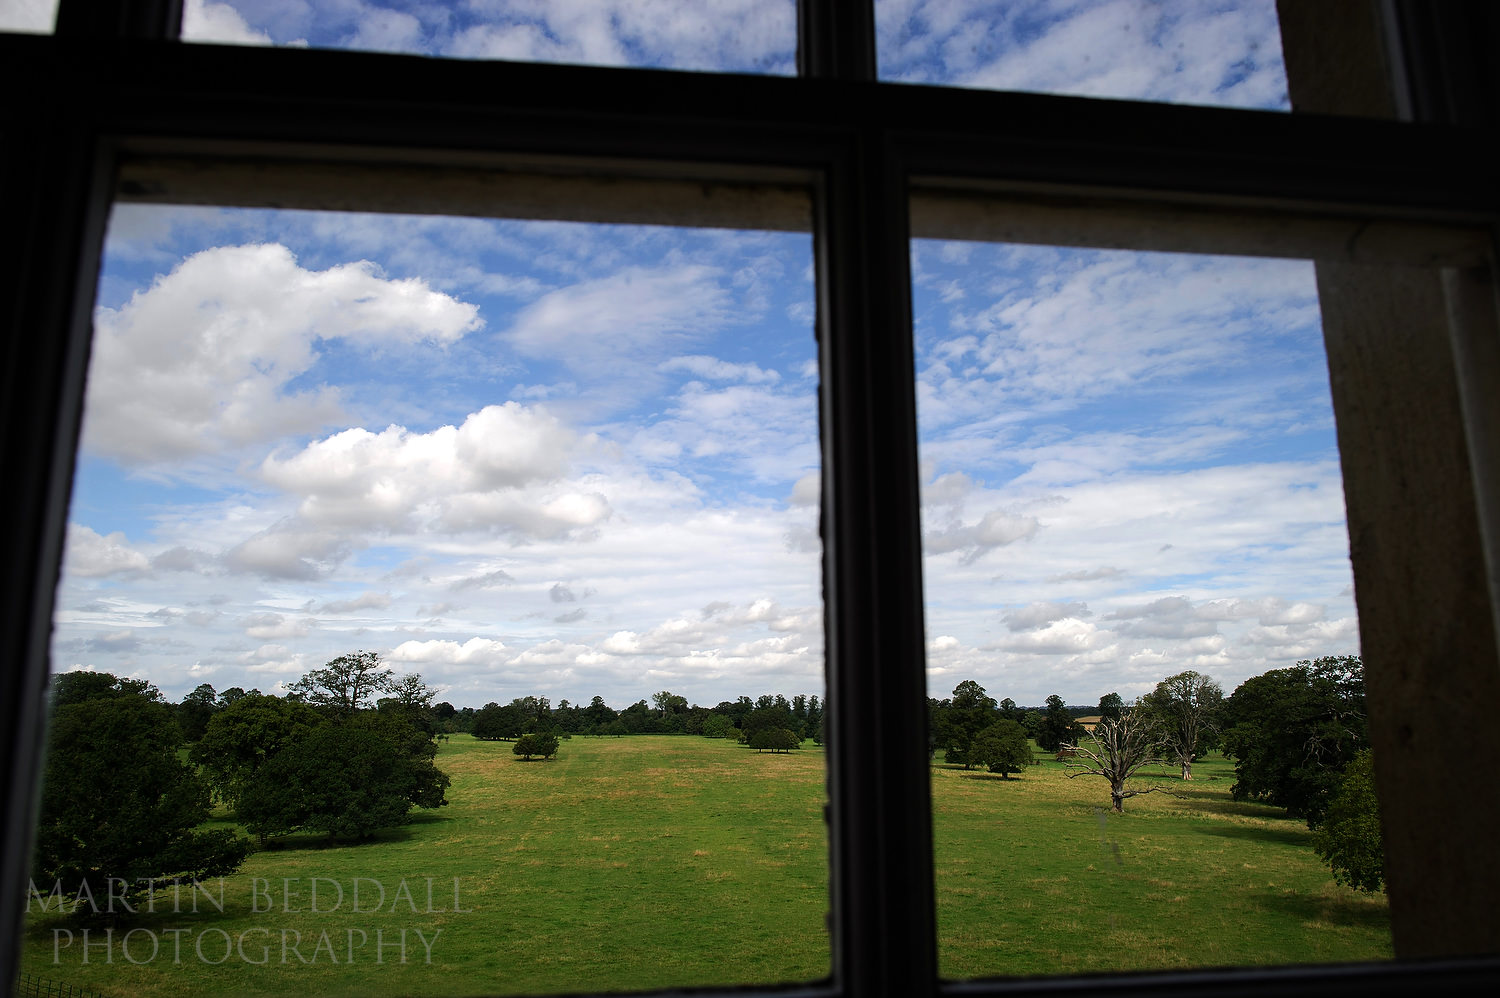 View from a window at Kirtlington Park